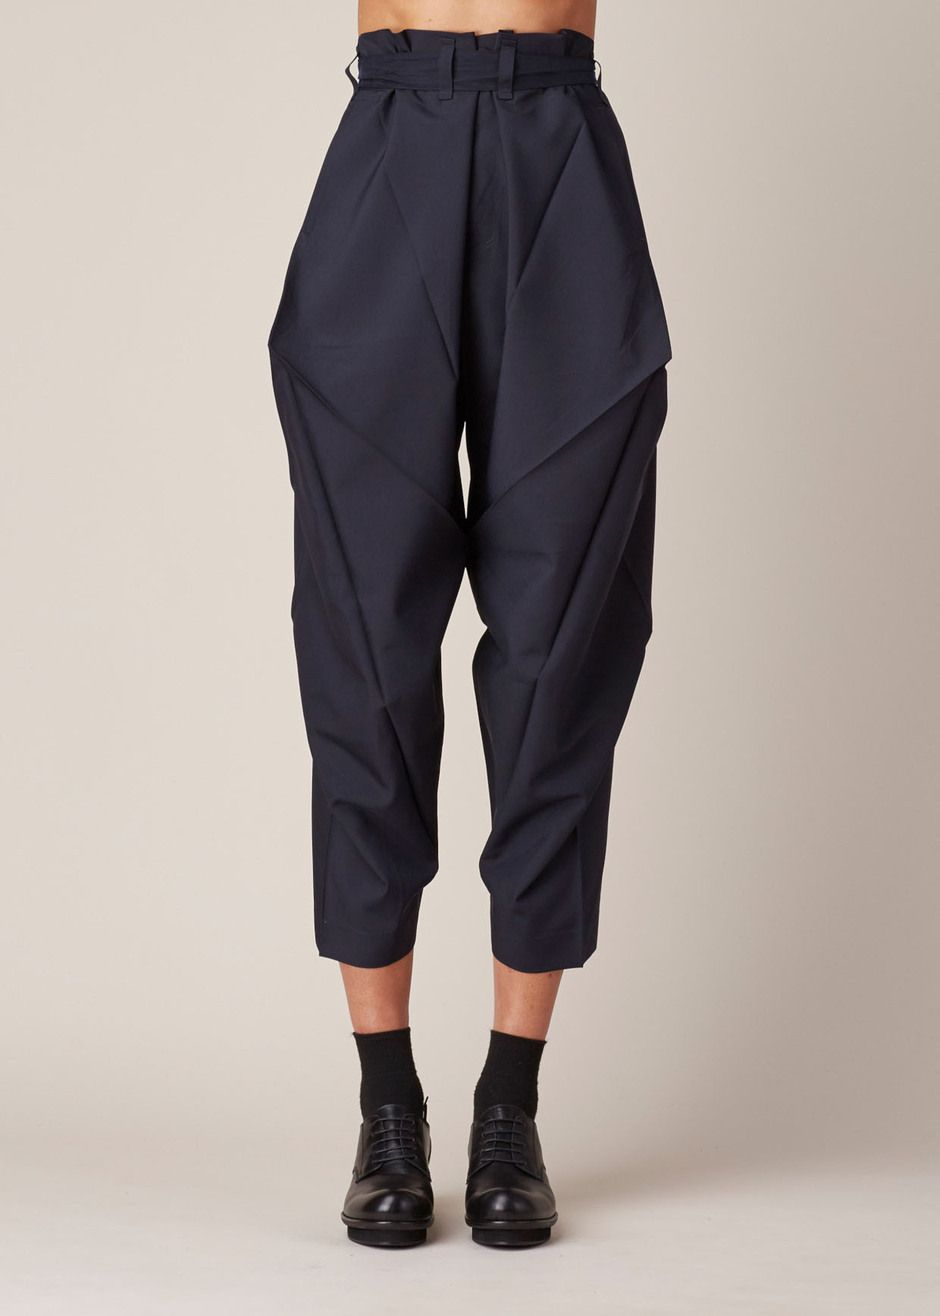 Issey Miyake Origami Culottes (Navy) | I'd Buy That ... - photo#22